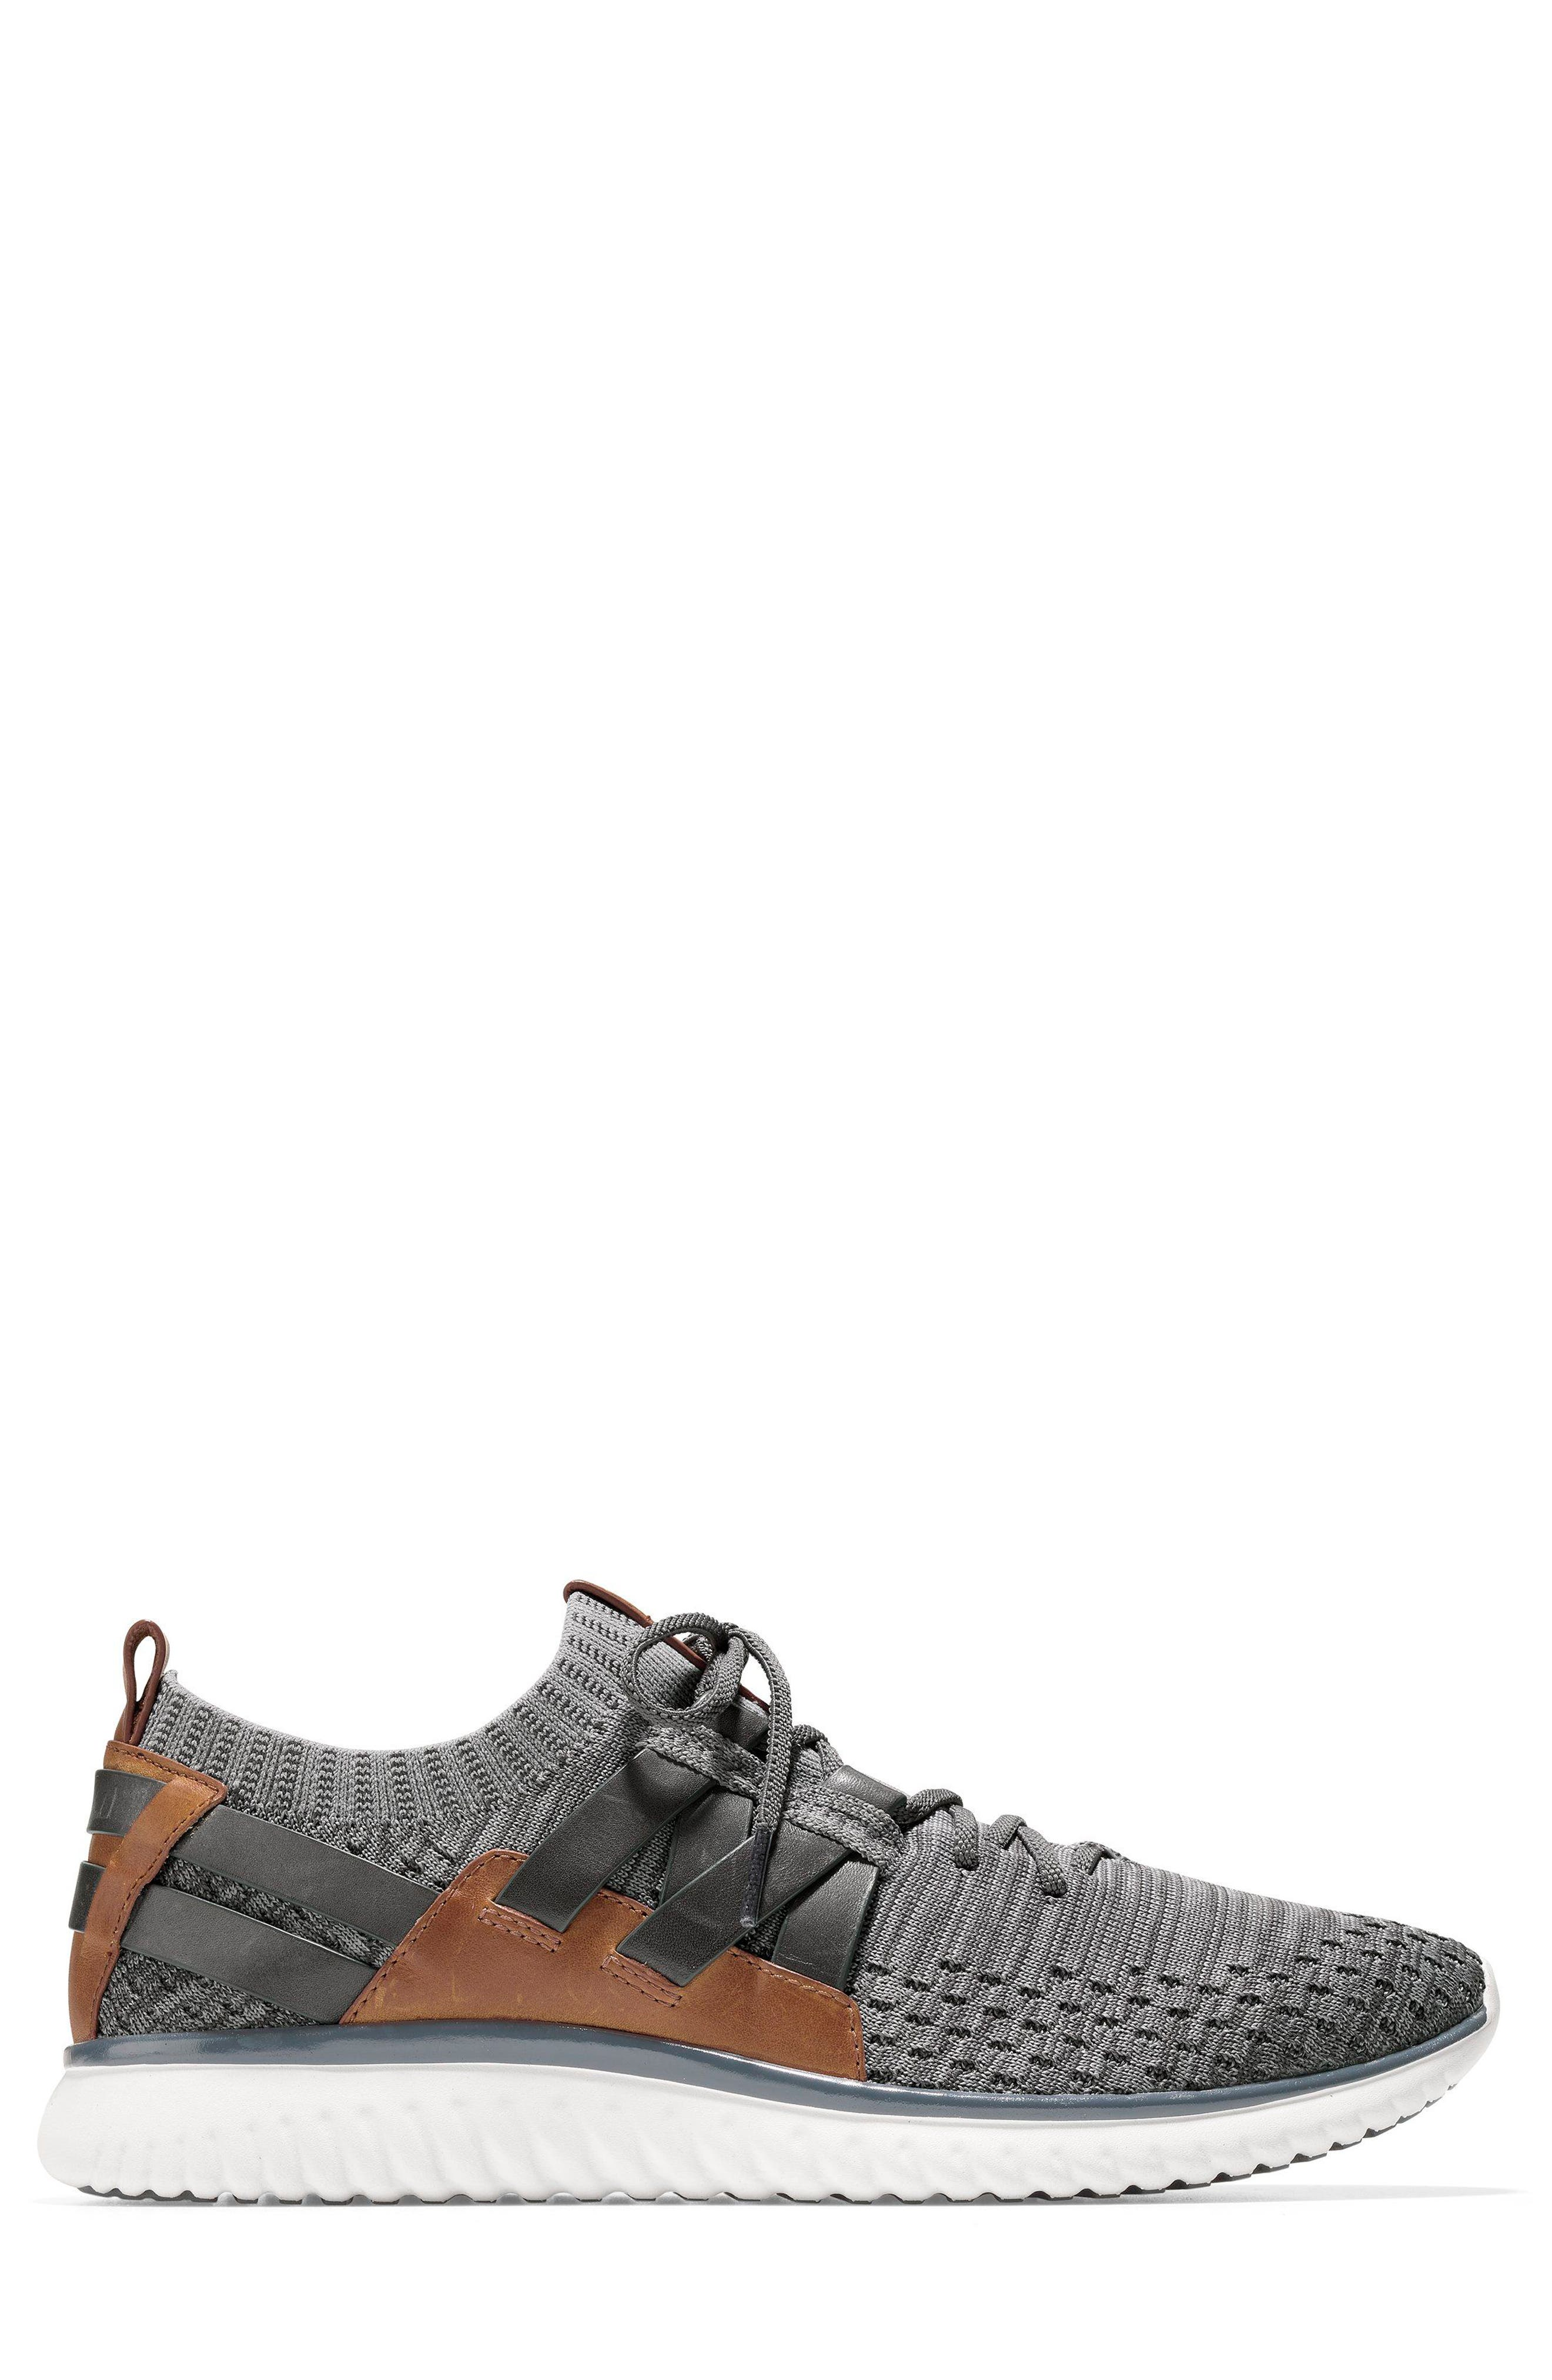 COLE HAAN,                             Grand Motion Sneaker,                             Alternate thumbnail 3, color,                             020